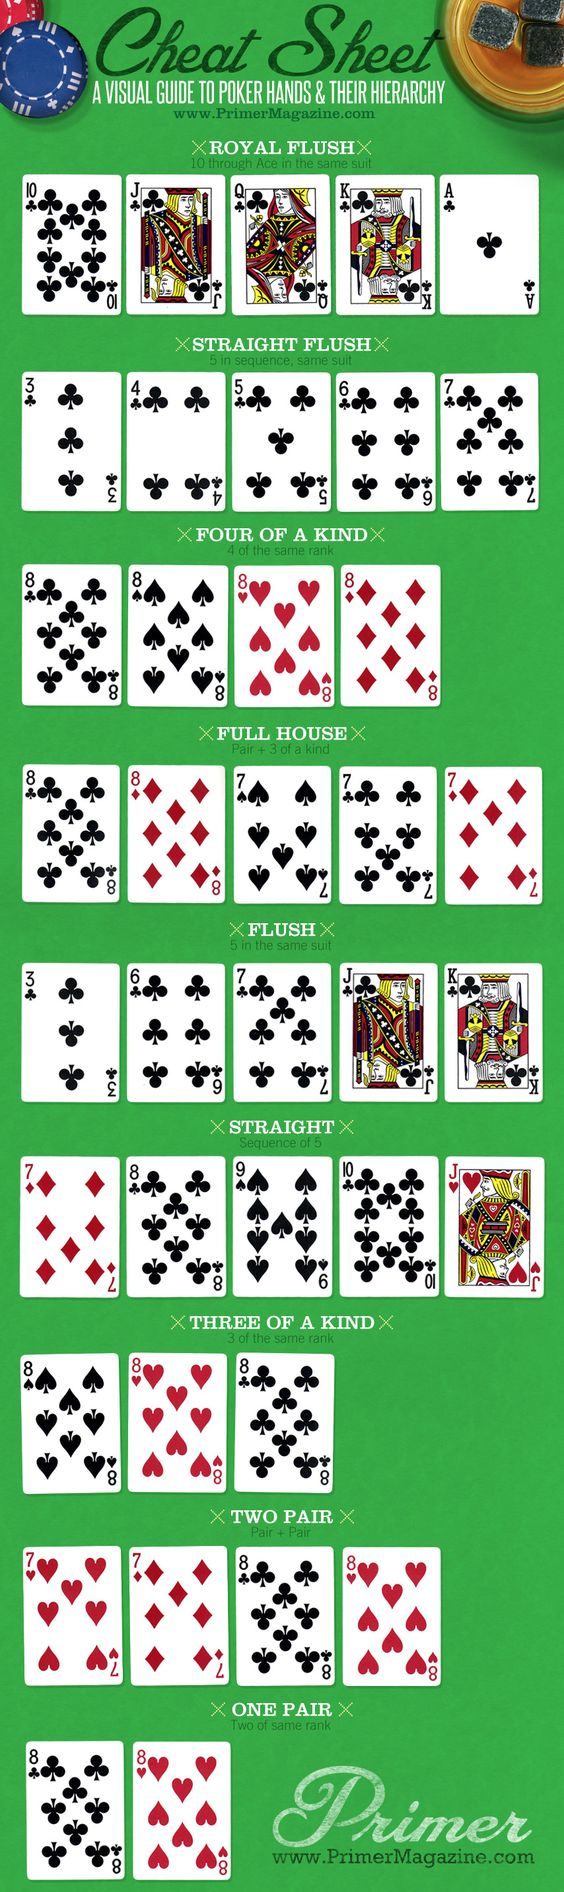 texas holdem poker card hierarchy